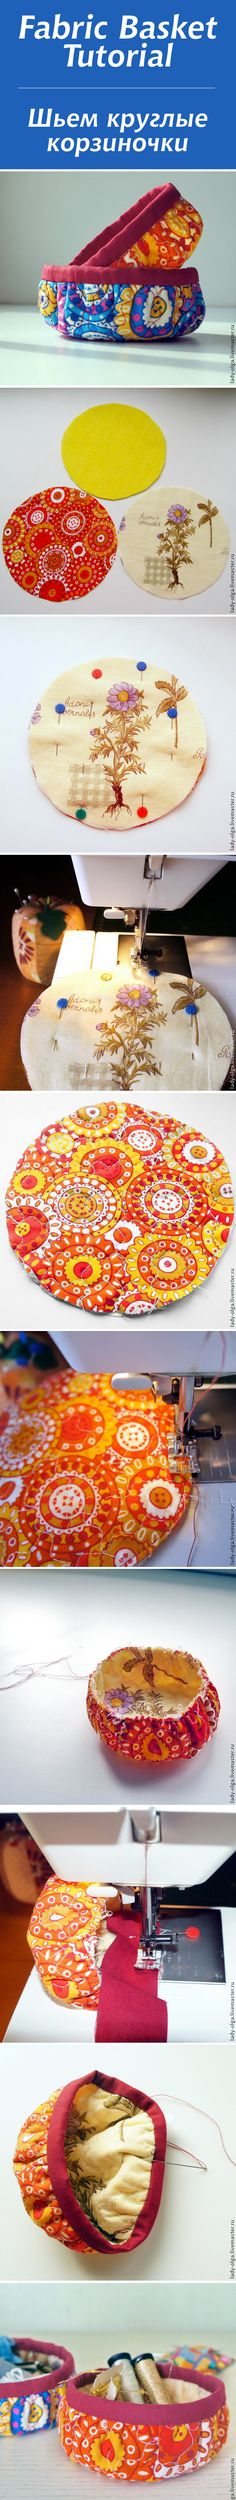 We sew round baskets / fabric basket tutorial . Easy Sewing Projects, Sewing Hacks, Sewing Crafts, Fabric Basket Tutorial, Quilting, Fabric Bowls, Origami, Round Basket, Sewing Baskets